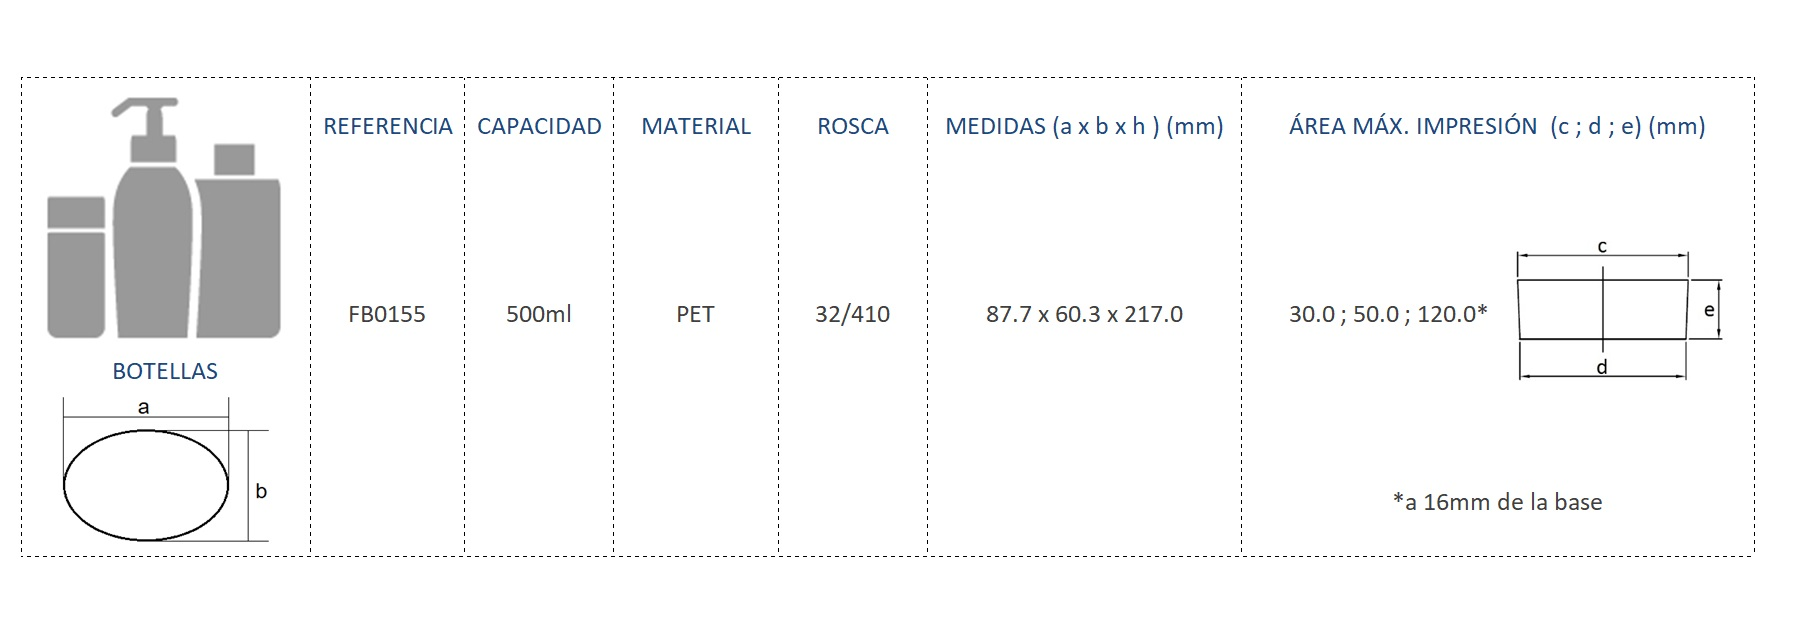 Cuadro de materiales botella FB0155